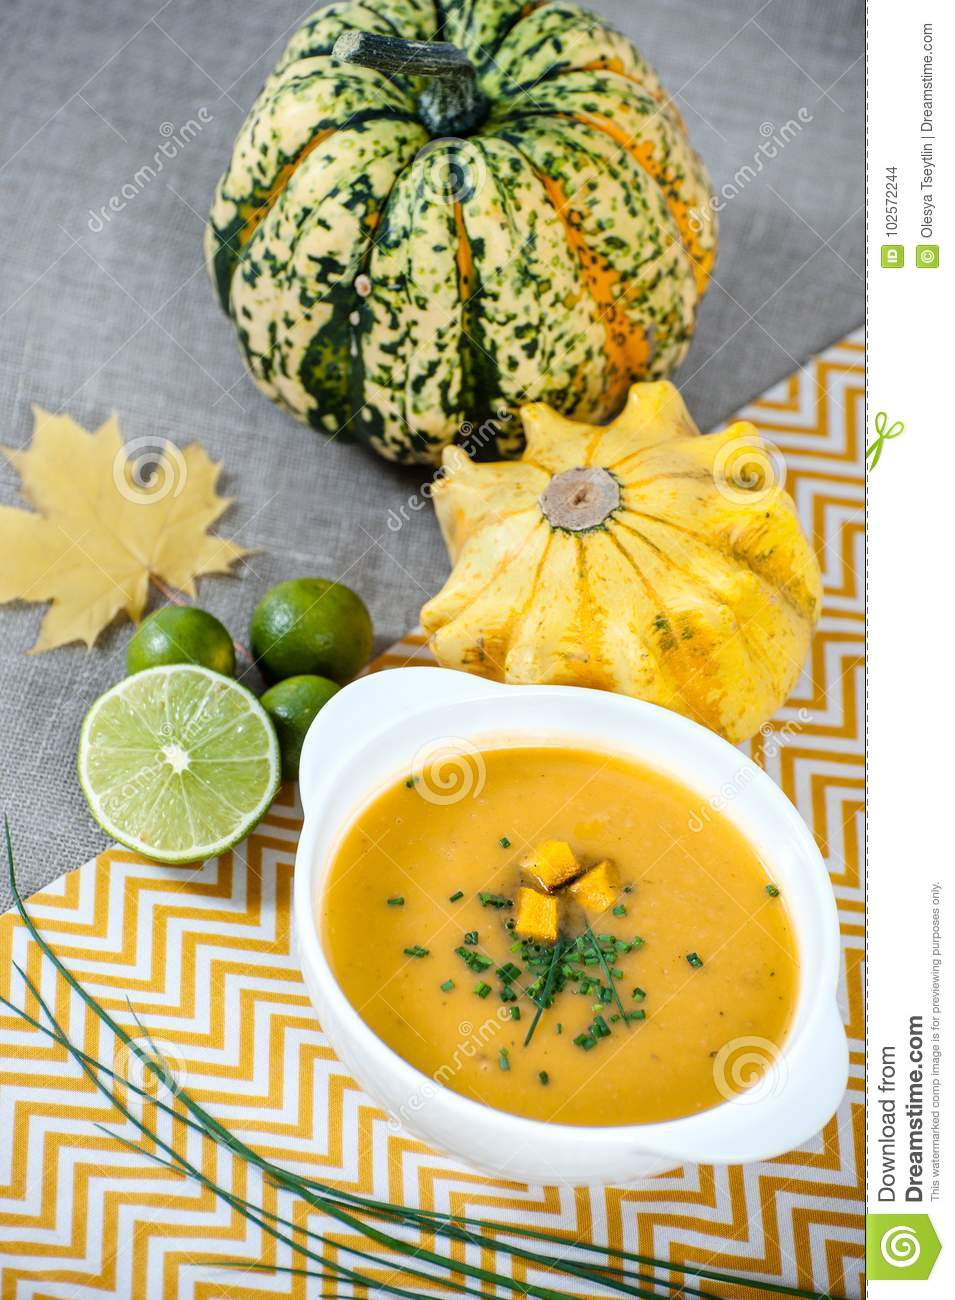 jamaican pumpkin soup with lime in a white stylish plate